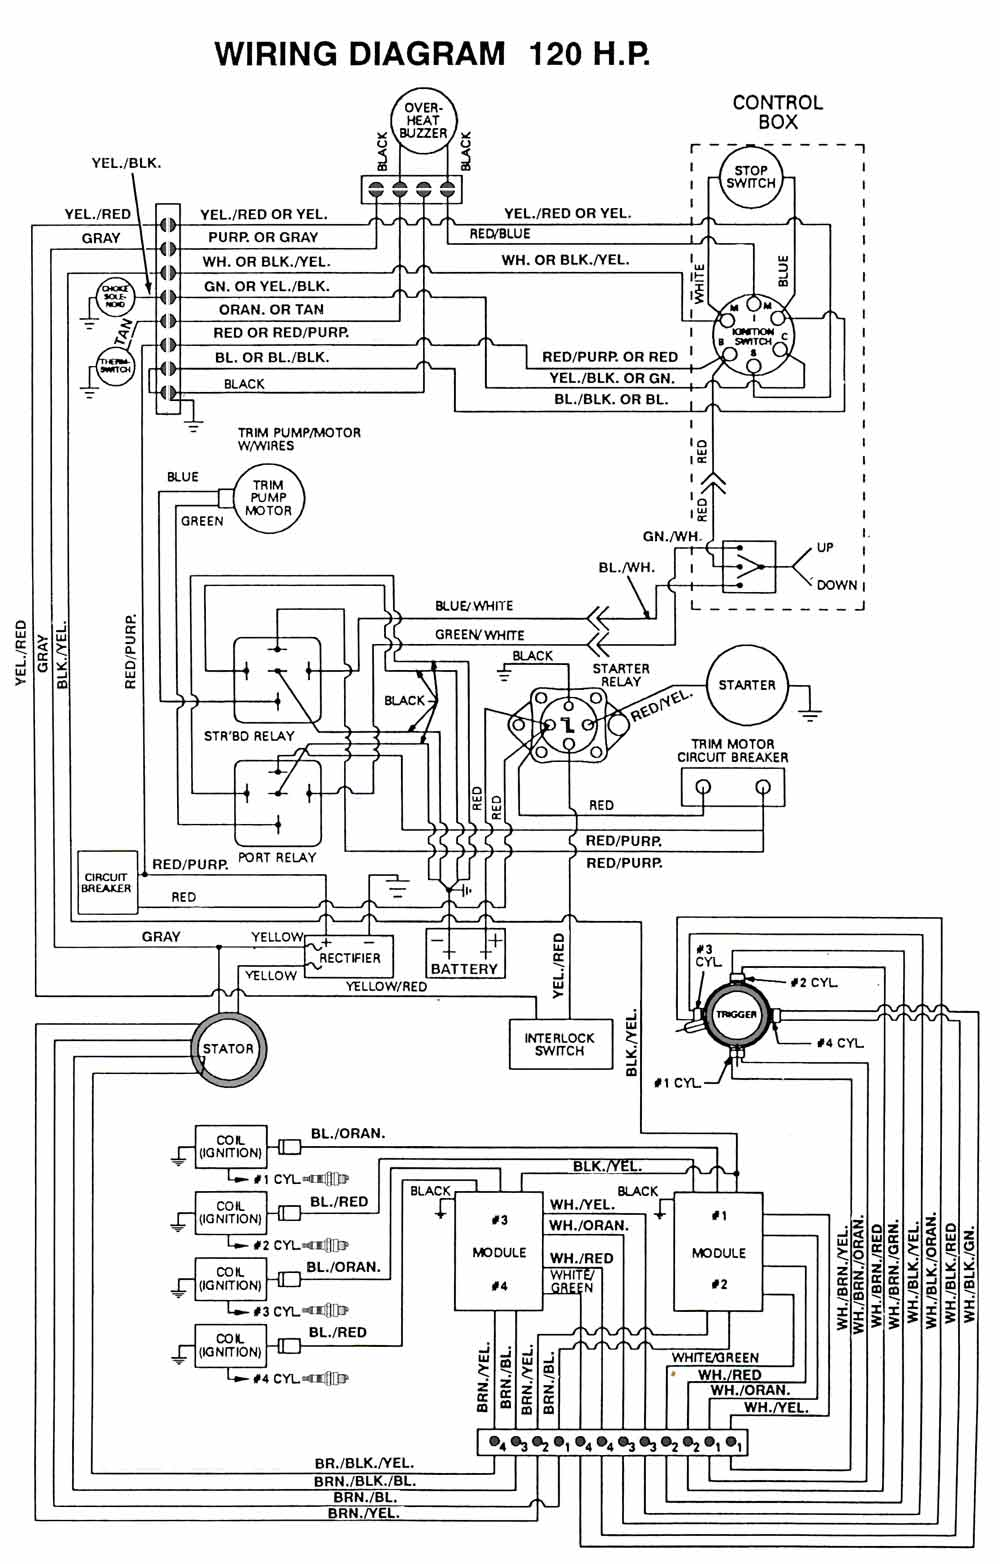 Chrysler Outboard Wiring Diagrams Mastertech Marine. Force 120 Hp Thru 1991a Models Engine Wiring. Ford. Ford 2 9 Efi Wiring Diagram At Scoala.co